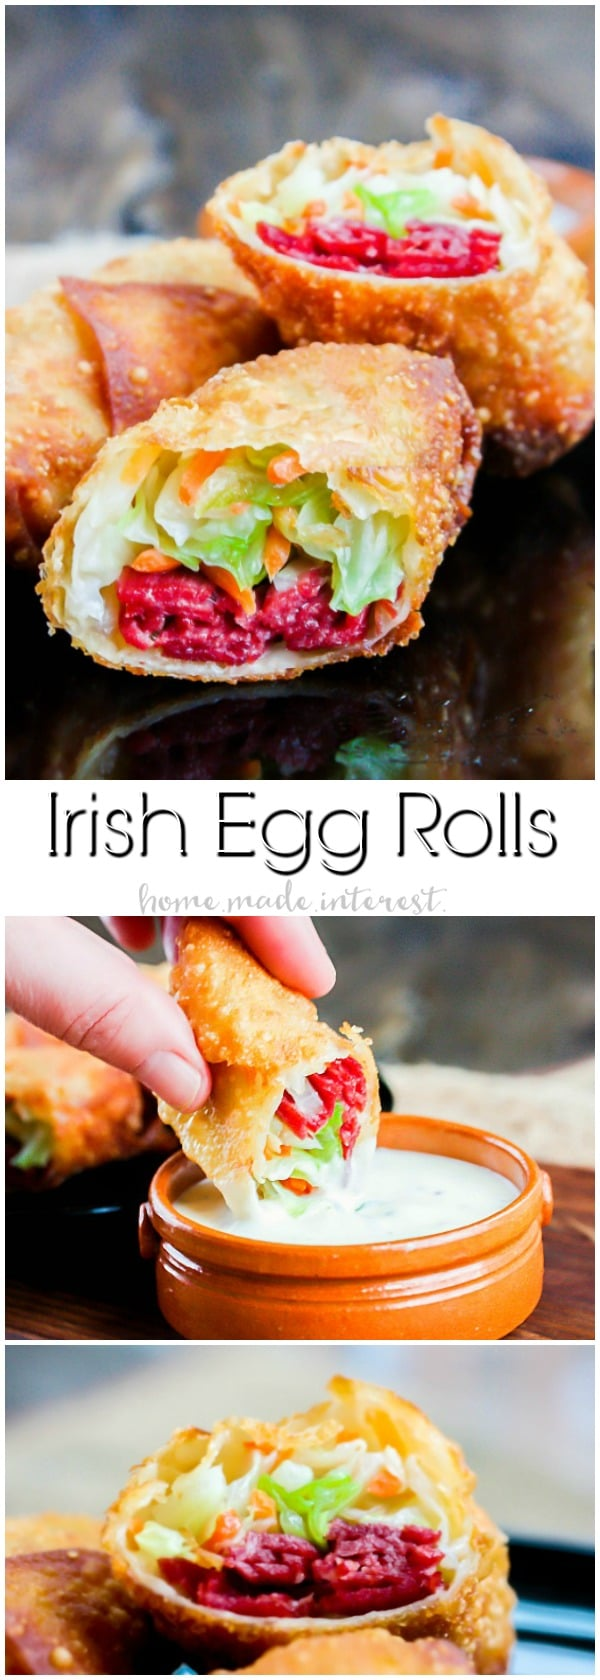 Corned Beef and Cabbage Egg Rolls | Corned beef and cabbage is a classic St. Patrick's Day recipe. We've turned this Irish recipe into an awesome St. Patrick's Day appetizer. Corned Beef and Cabbage Egg Rolls are all of the classic corned beef and cabbage flavors wrapped up in a crunchy egg rolls and dipped in a creamy parsley sauce. This is an easy St. Patrick's Day appetizer recipe you don't want to miss.